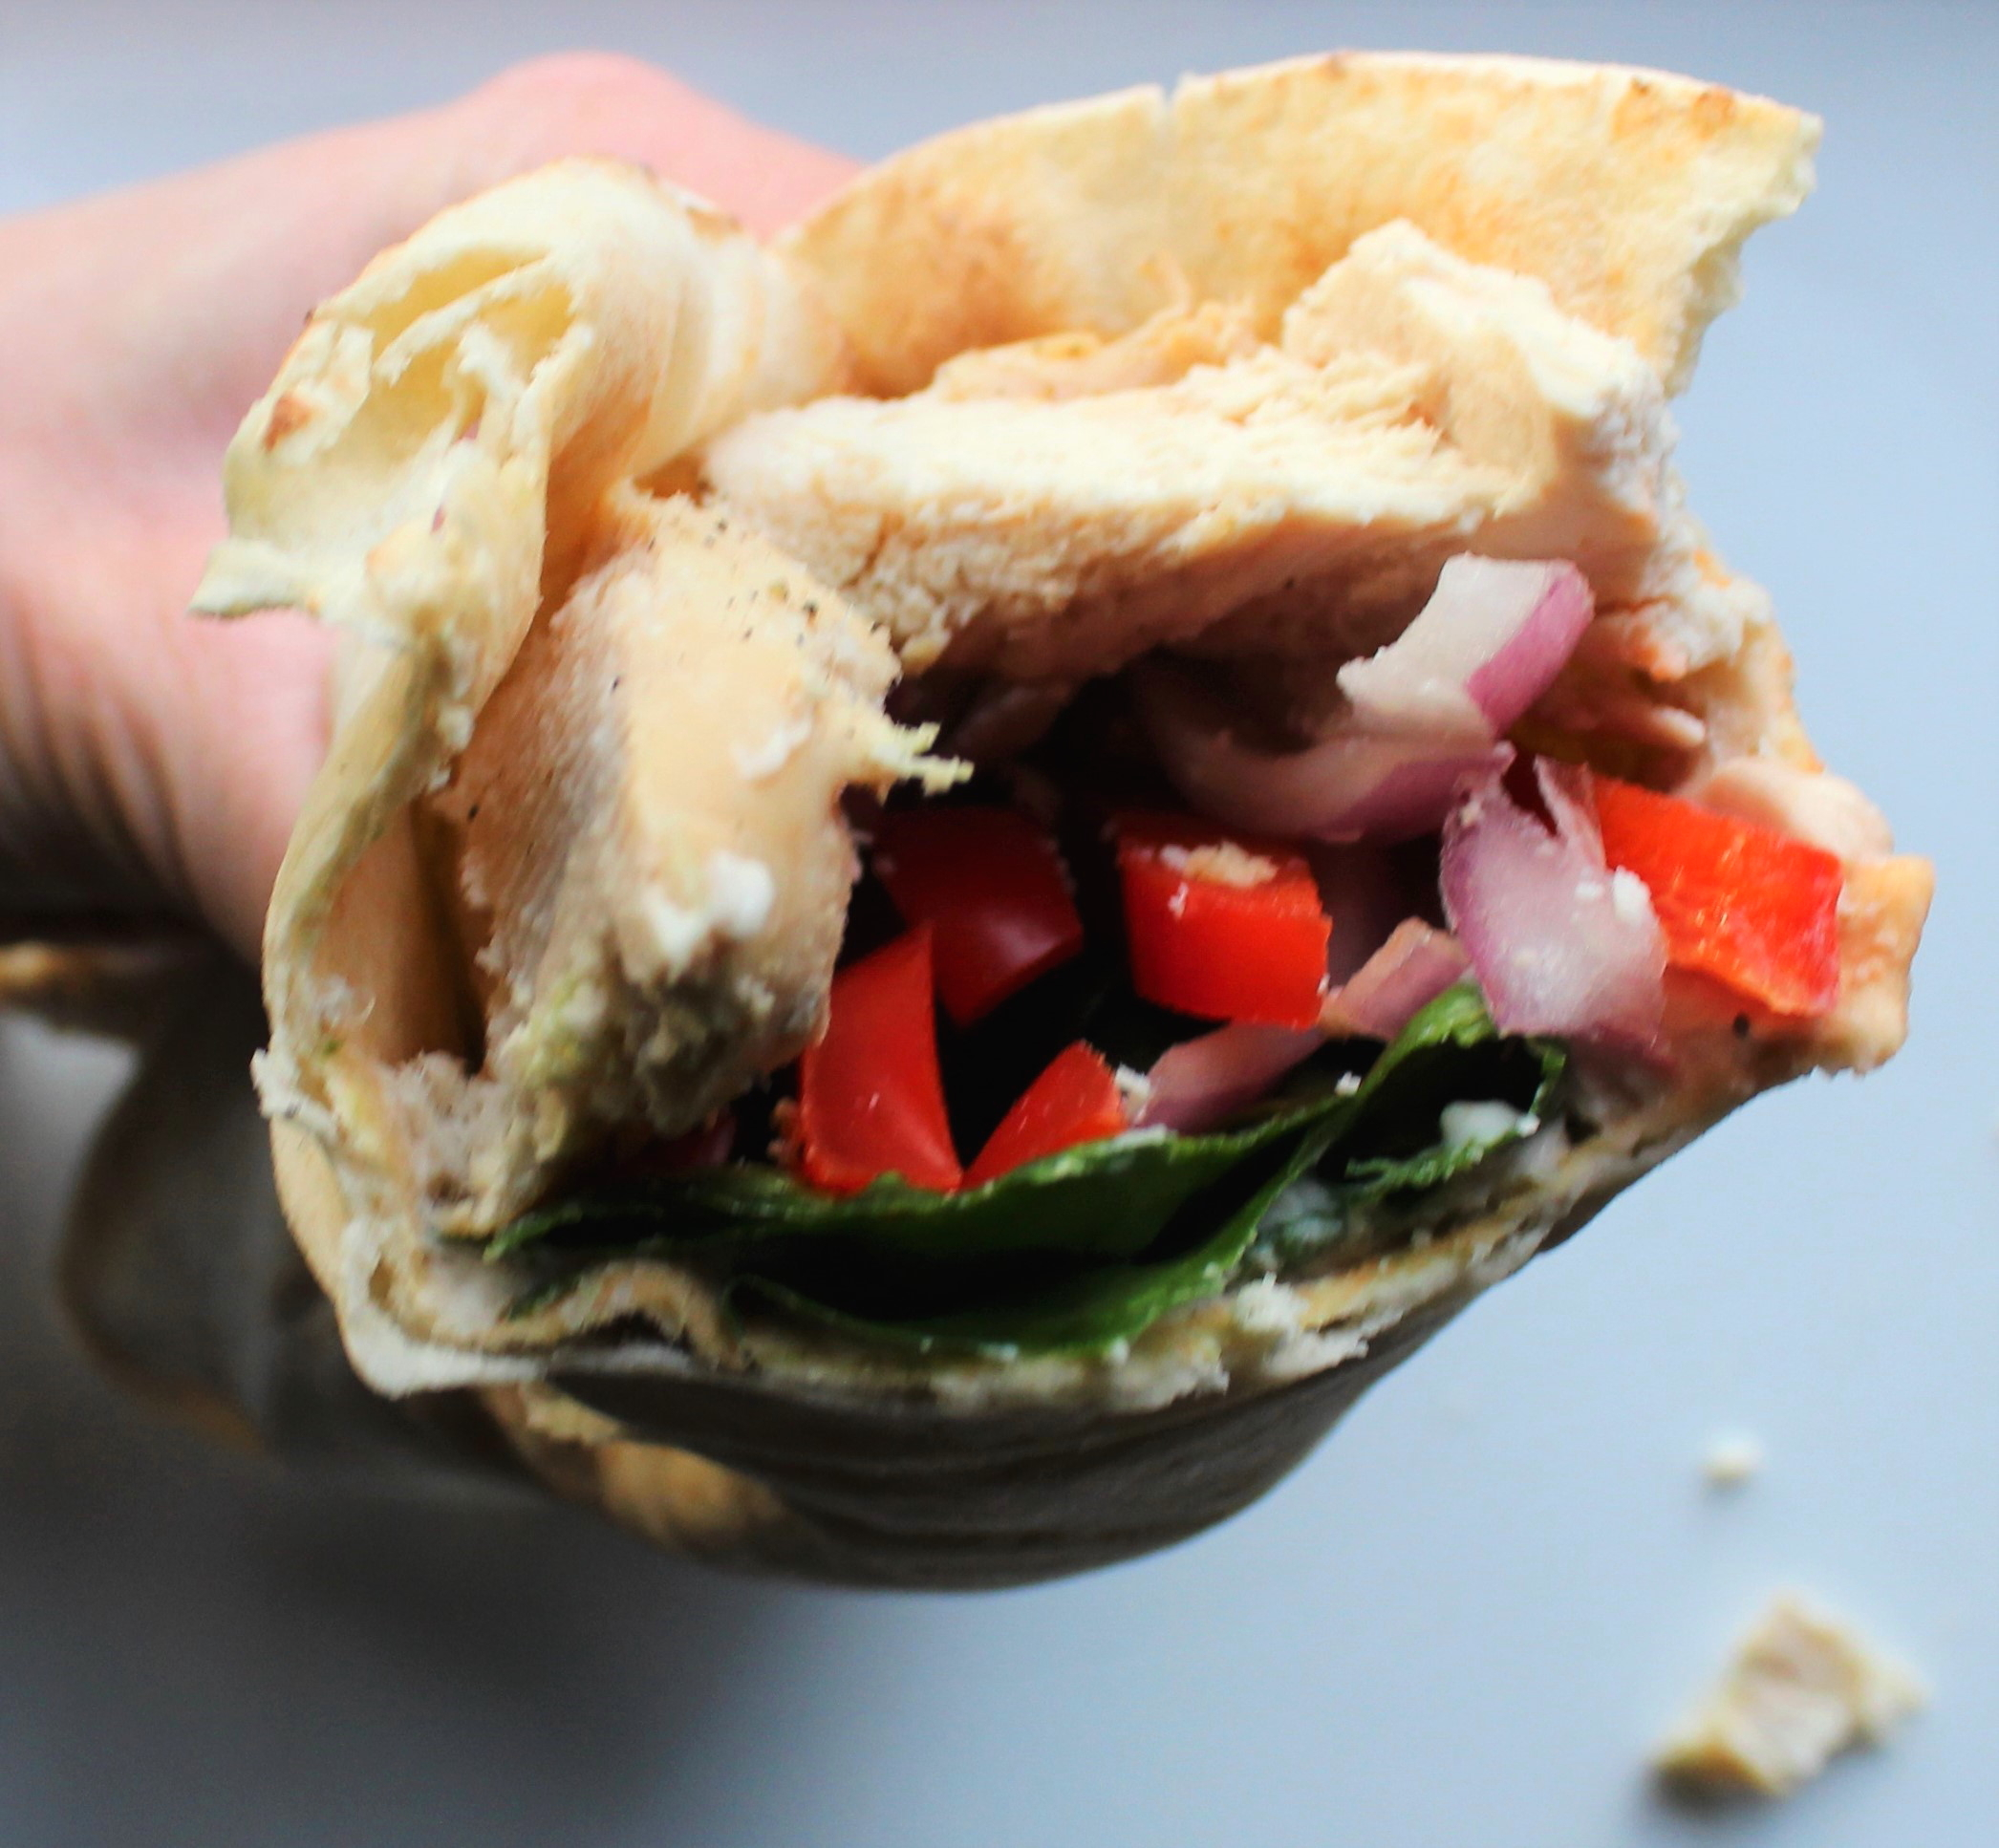 Chicken Pita Wrap with Spinach, Red Bell Pepper, and Hummus 2